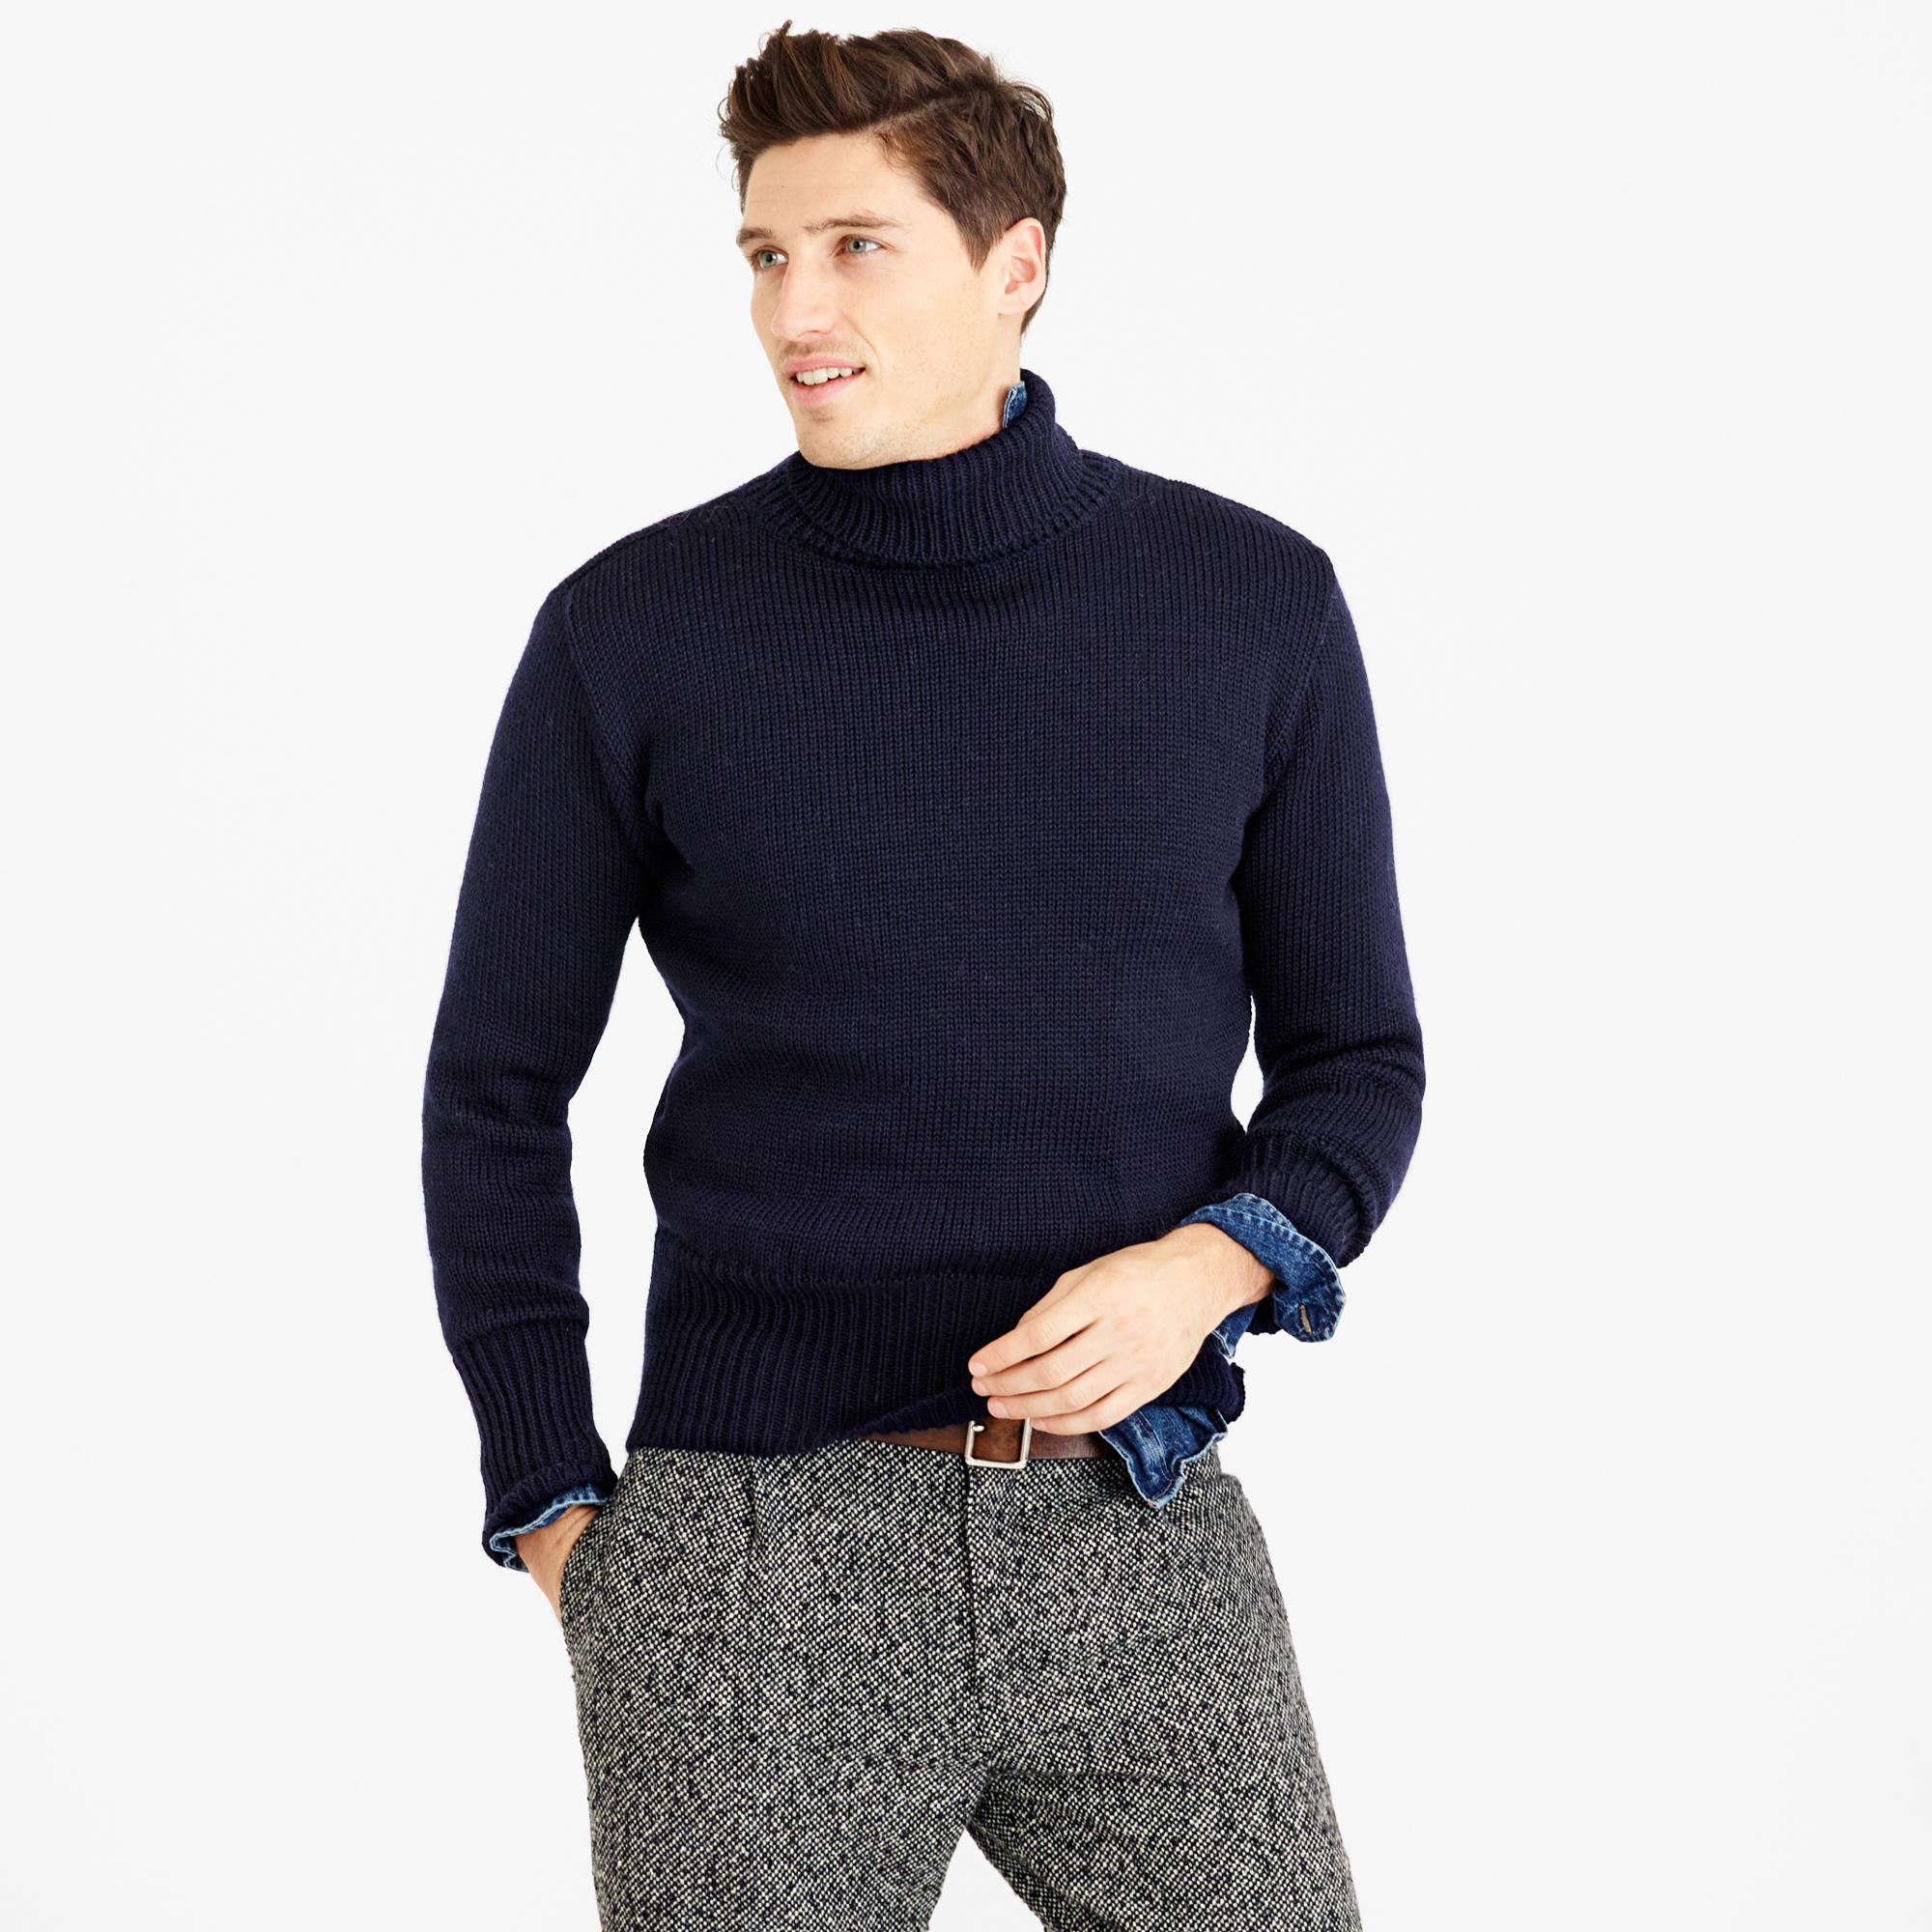 North sea clothing diver turtleneck sweater in blue for J crew mens outfits